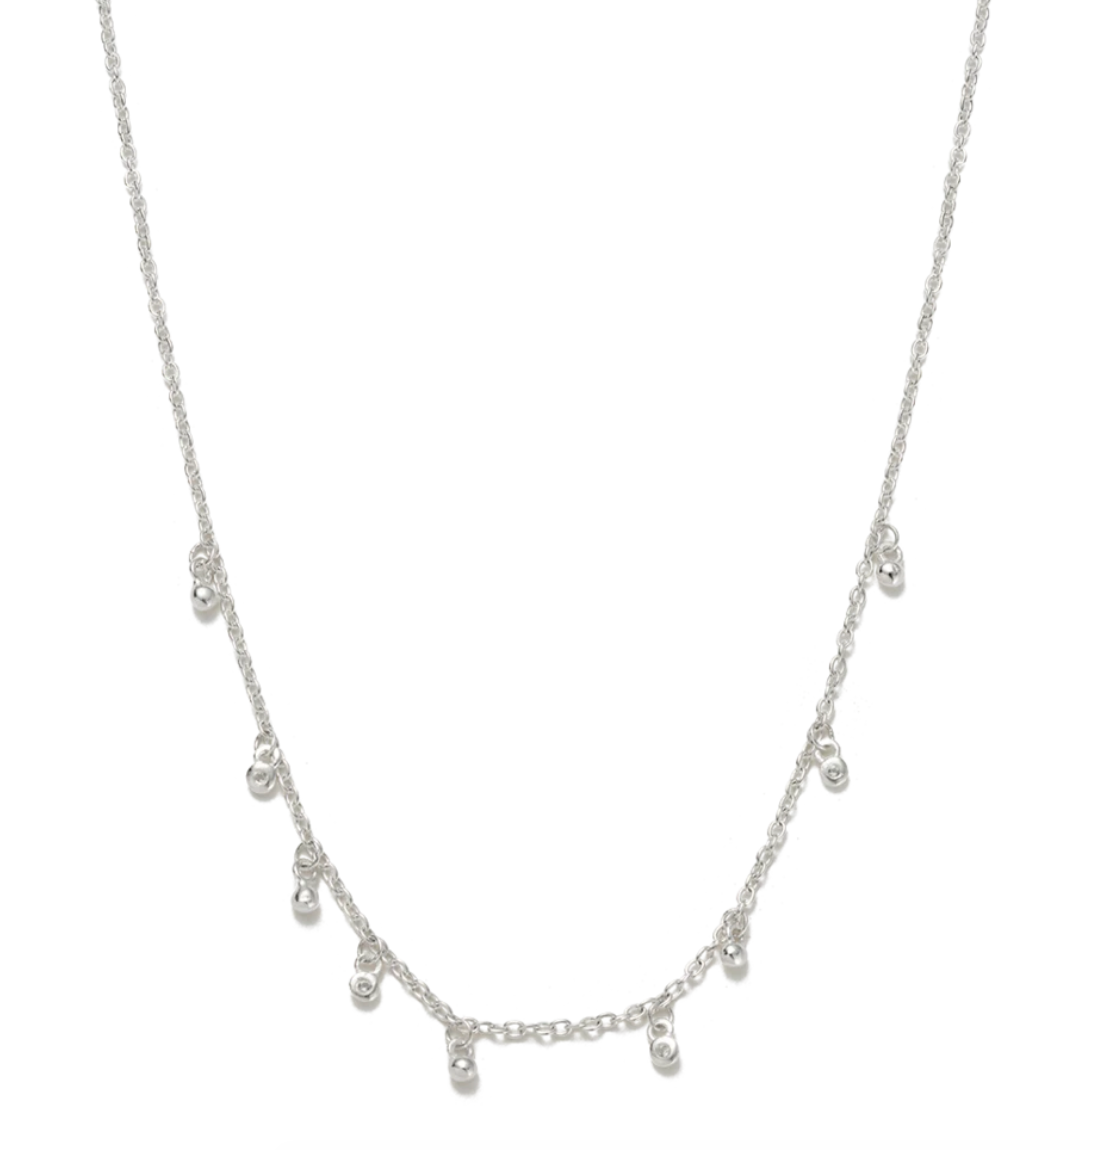 Kirstin Ash Sea Mist Necklace -Sterling Silver